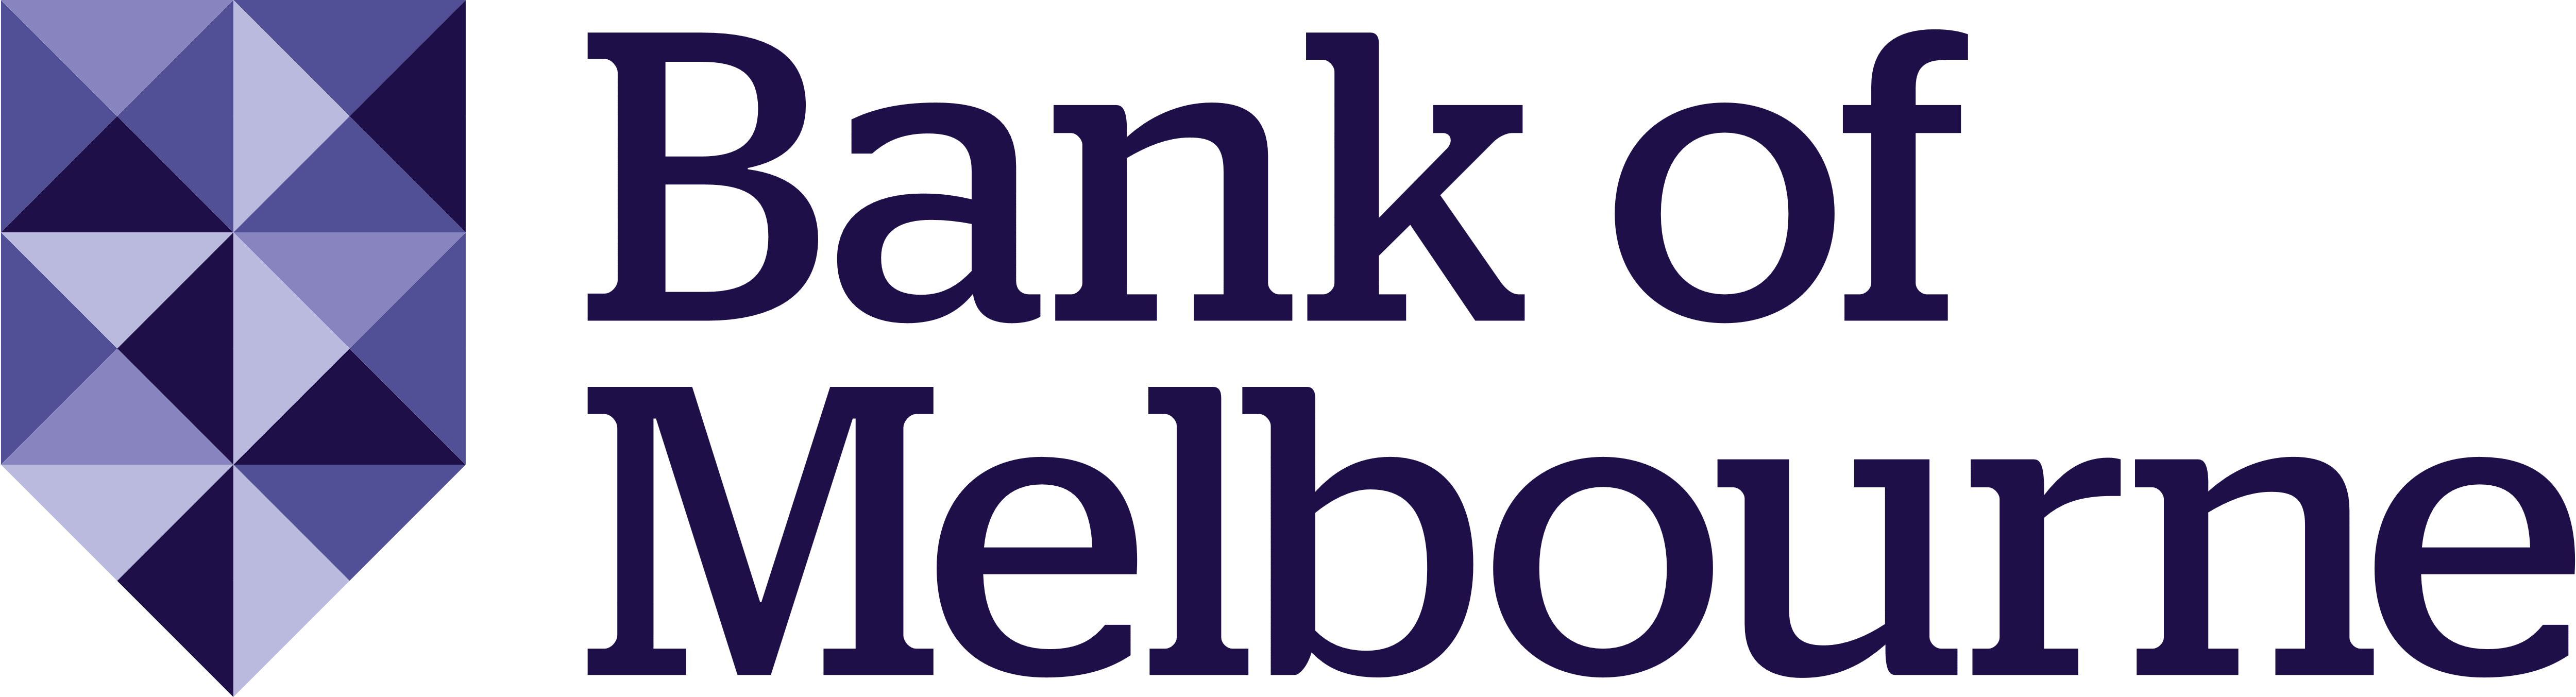 bank melbourne logos download #32699